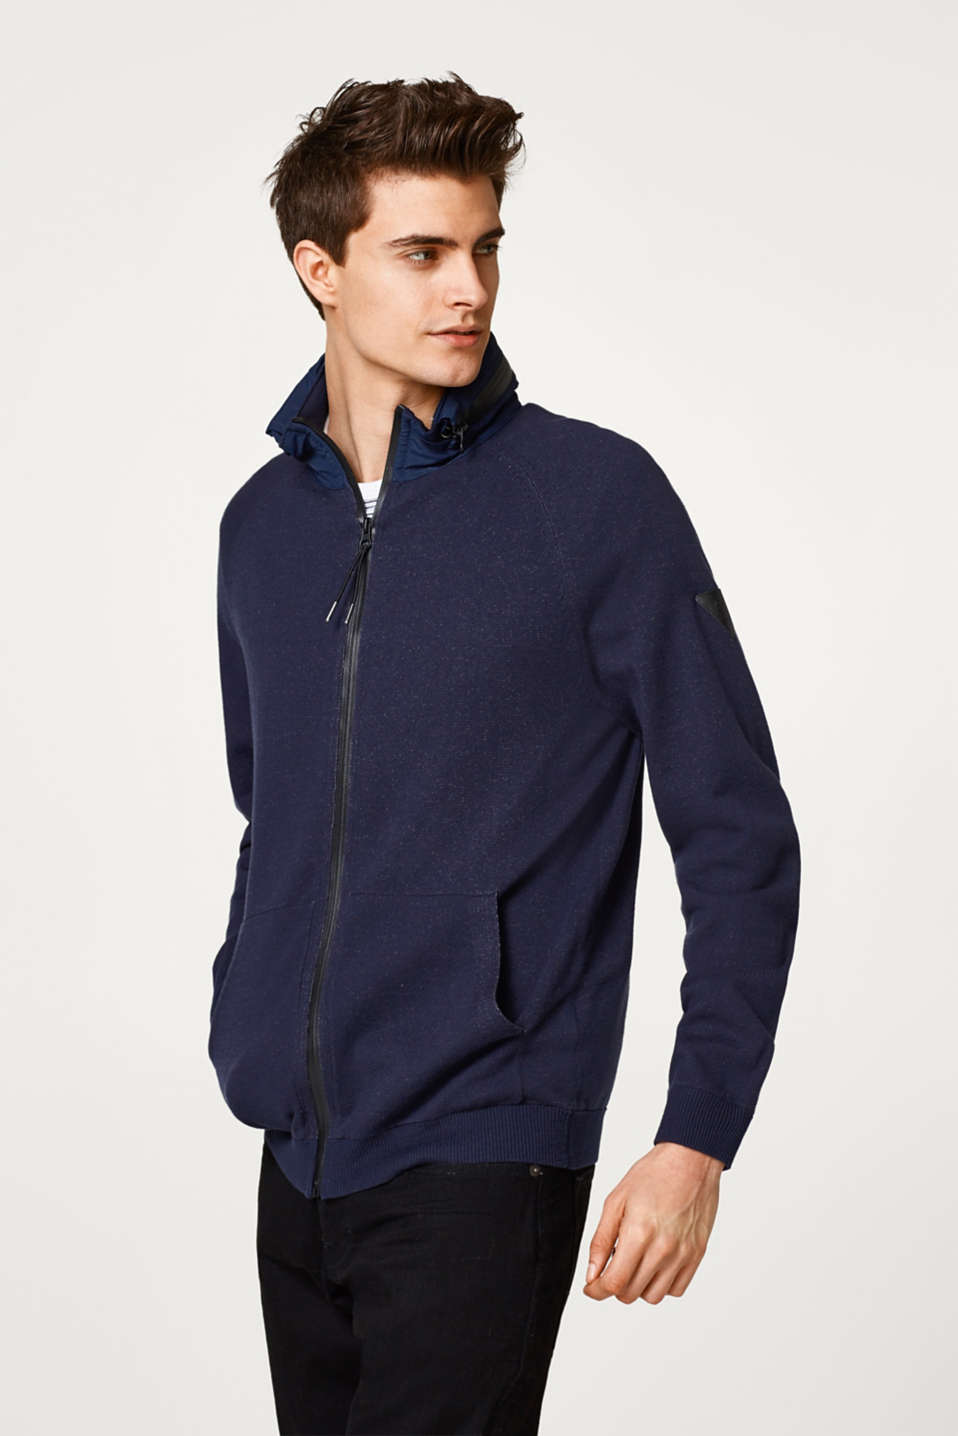 Esprit - Zip cardigan with an adjustable nylon hood